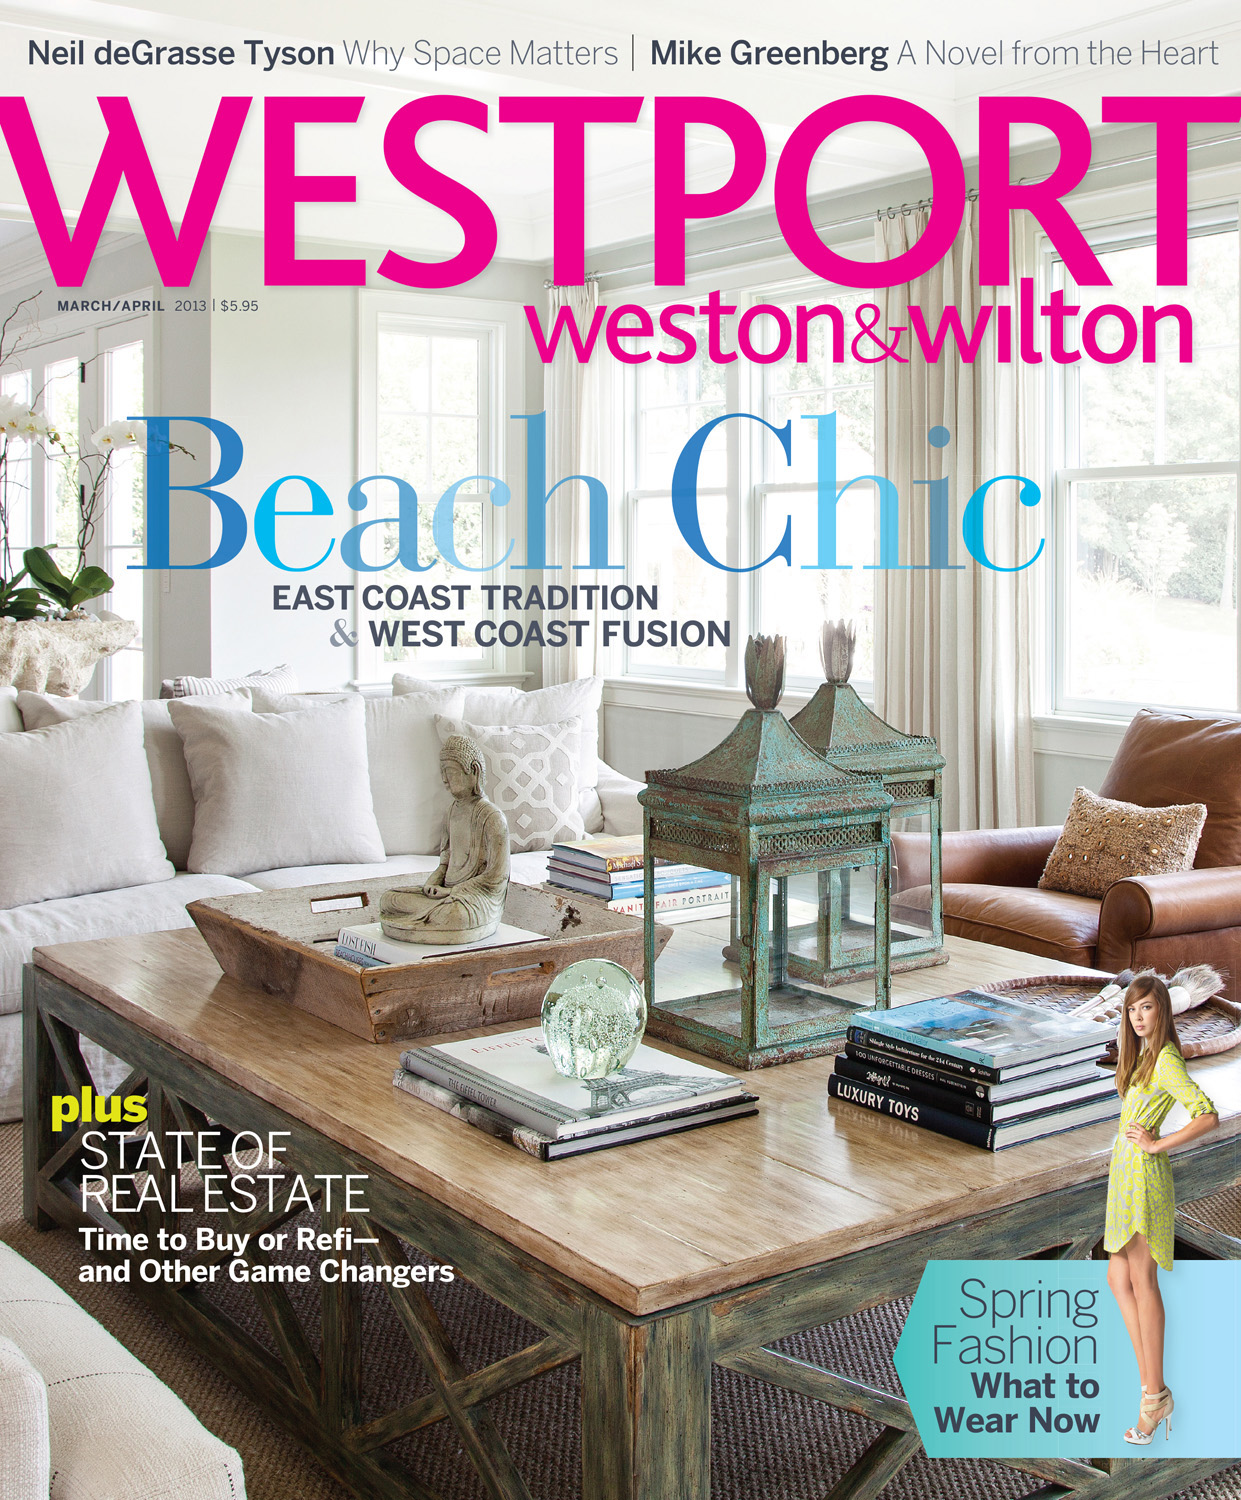 Westport Magazine March/April 2013